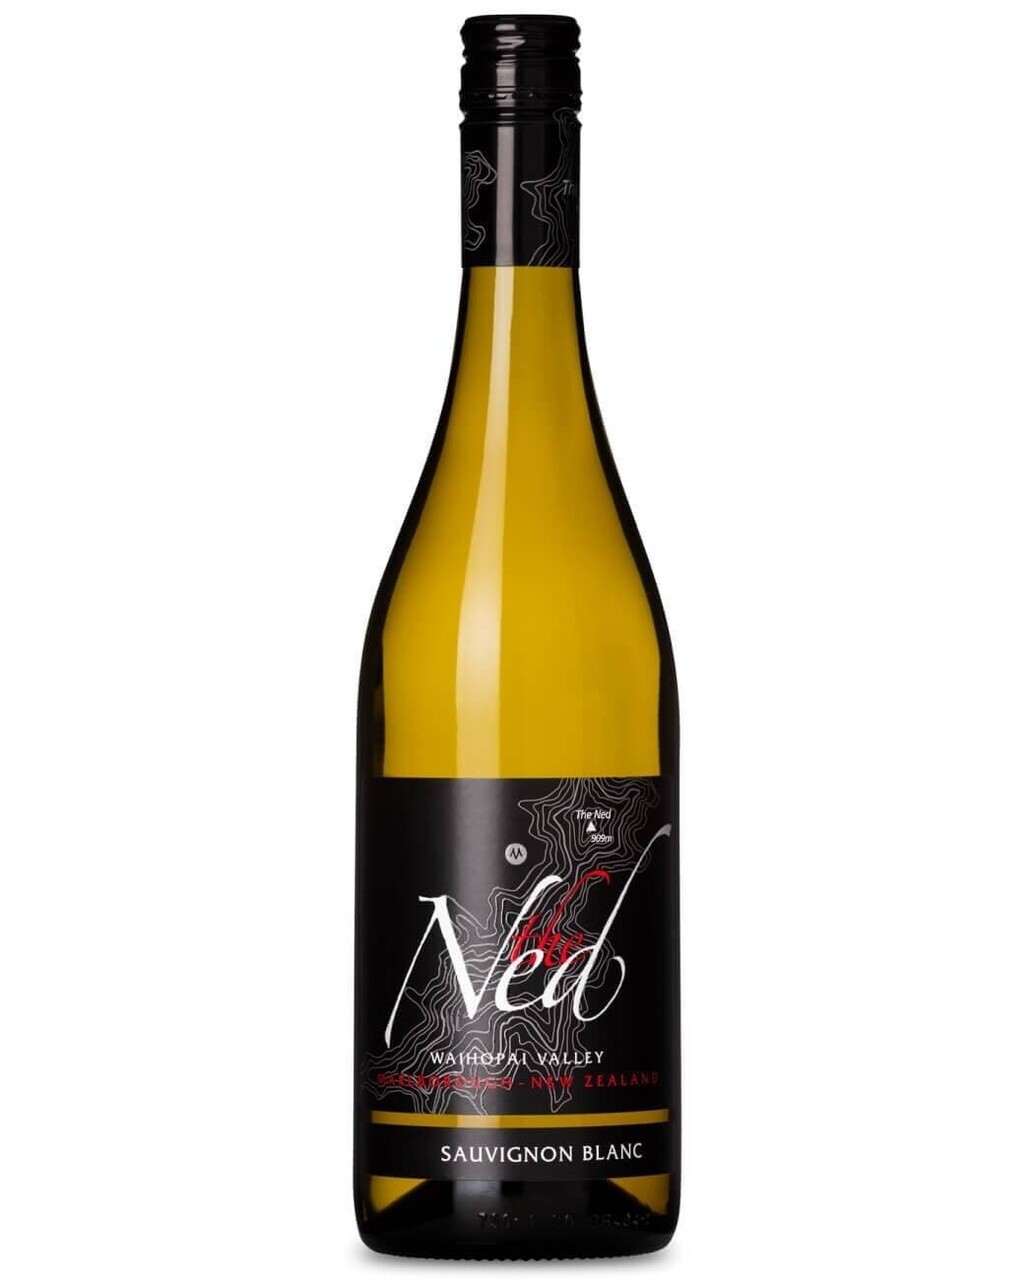 Marisco Vineyard The Ned Sauvignon Blanc